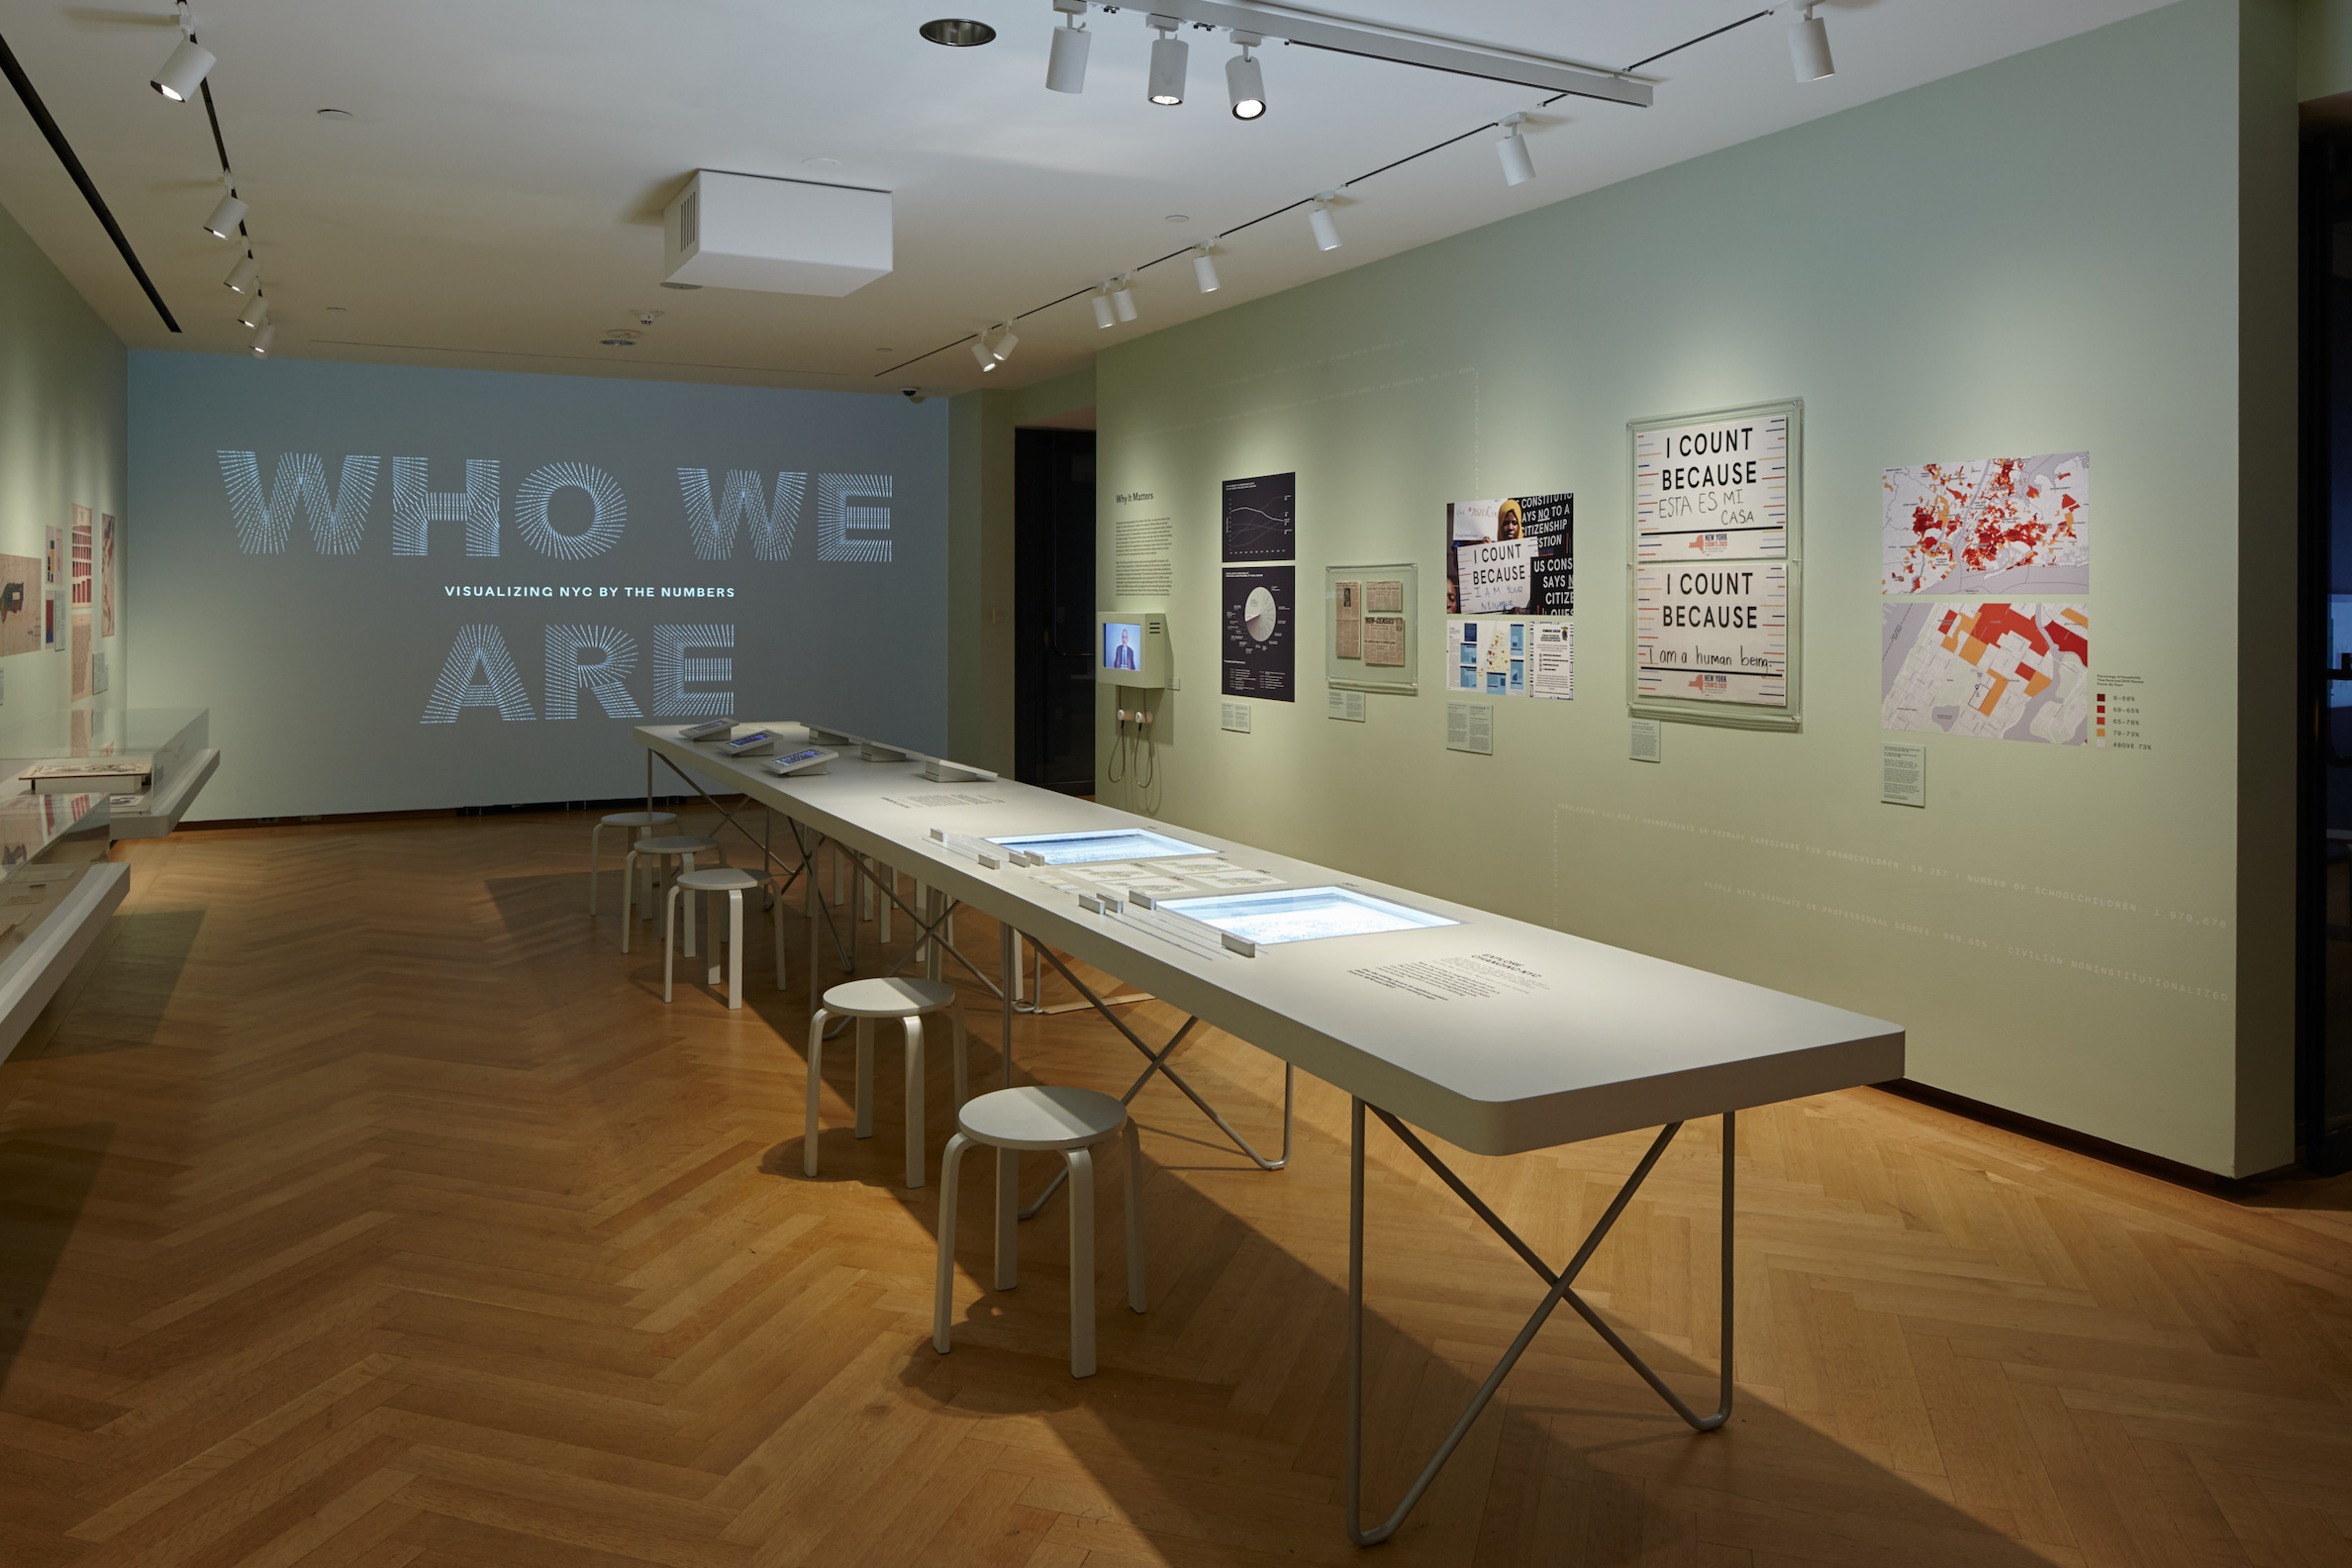 Installation view of Who We Are: Visualizing NYC by the Numbers.